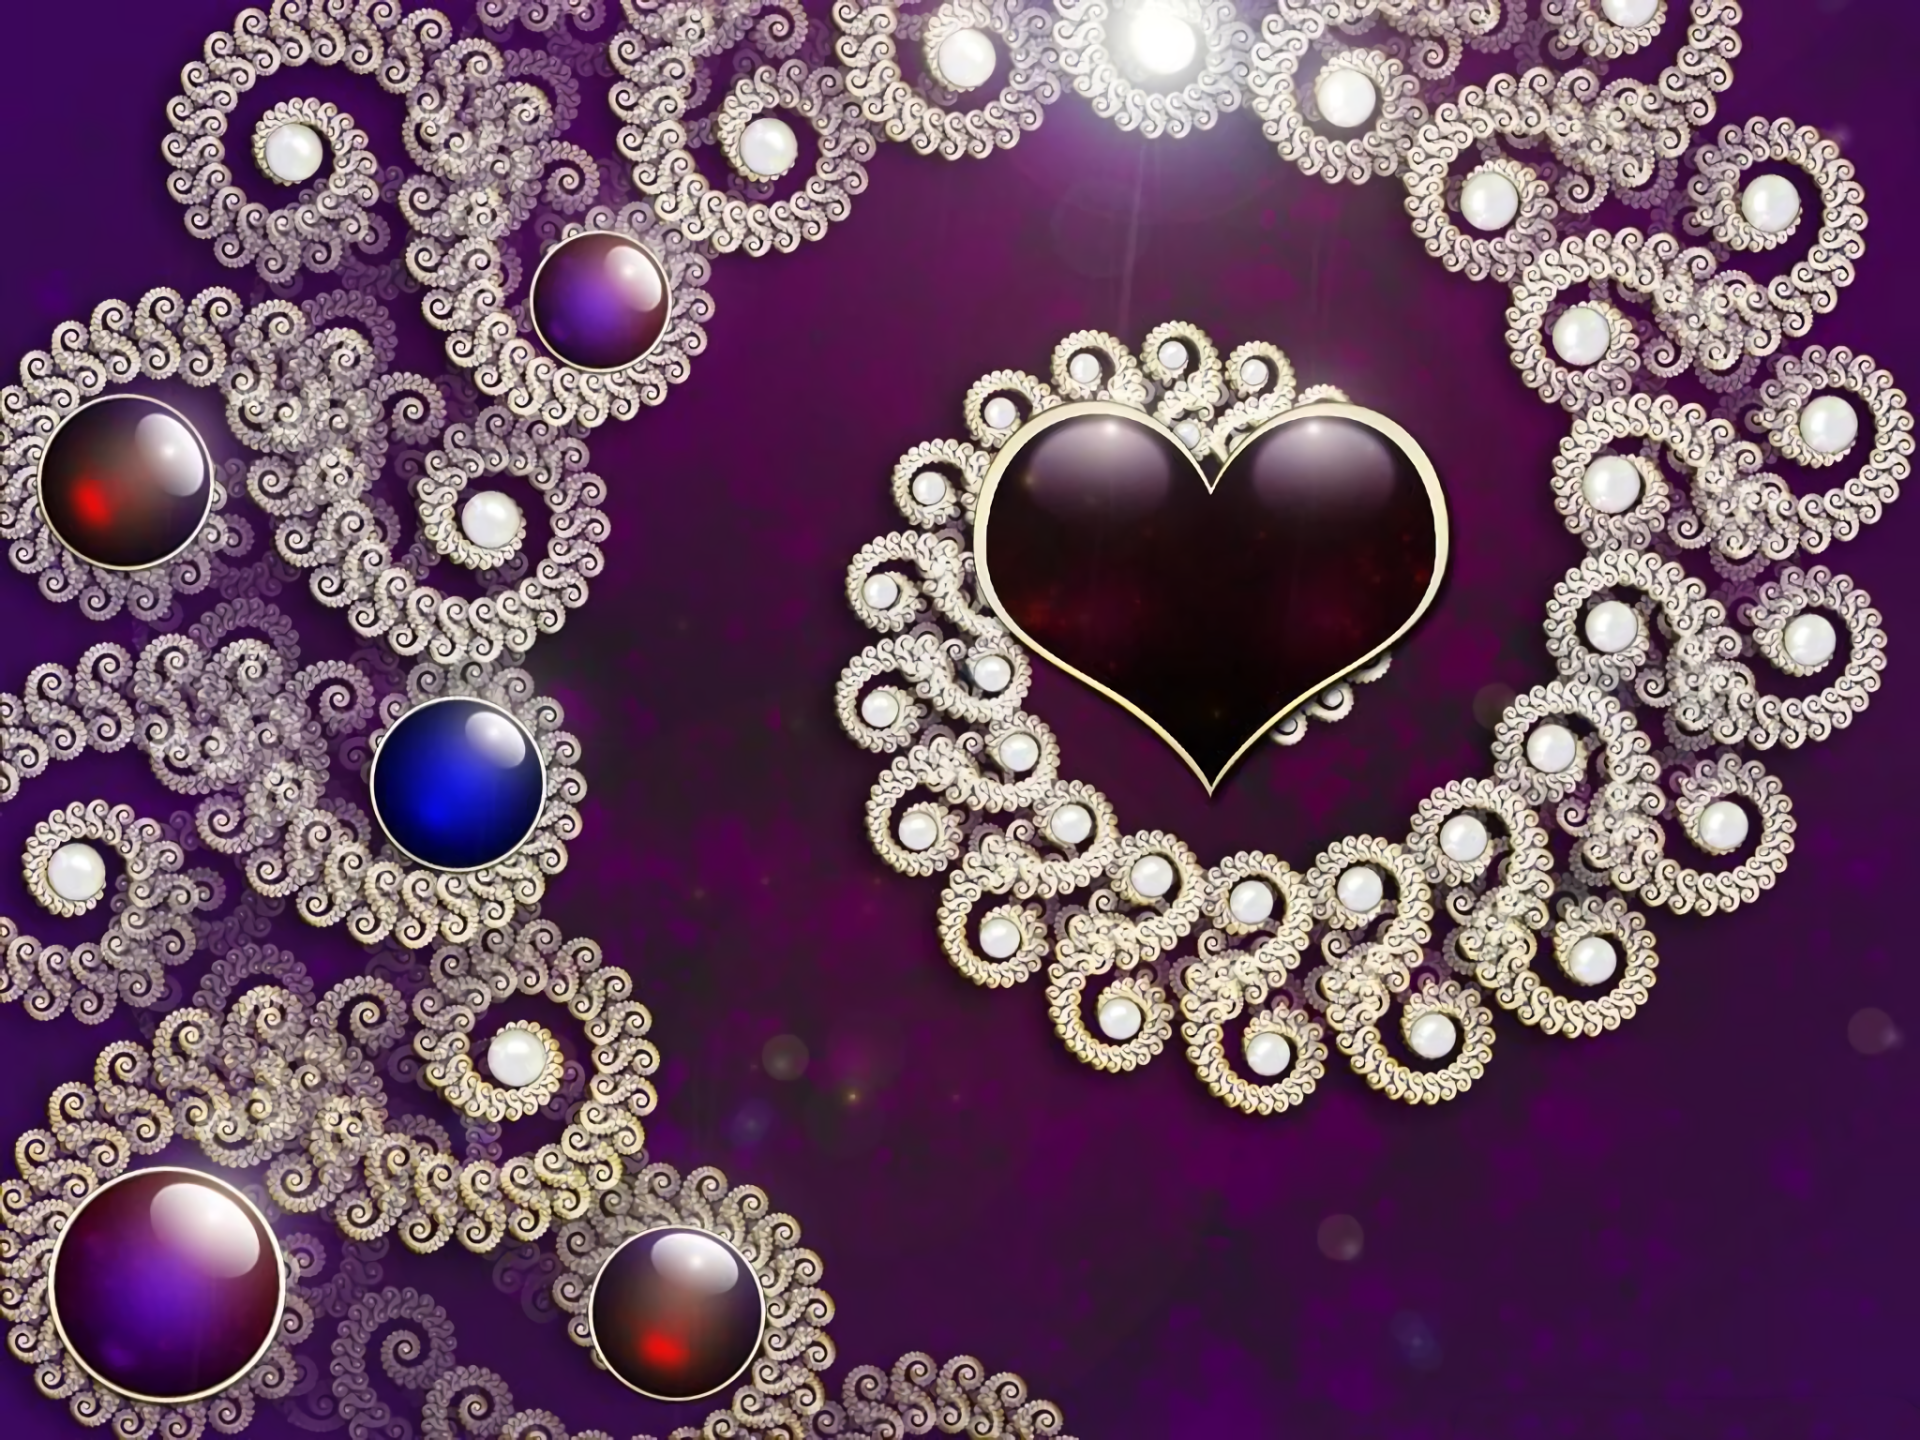 Artistic - Heart  Abstract Design Silver Jewelry Wallpaper